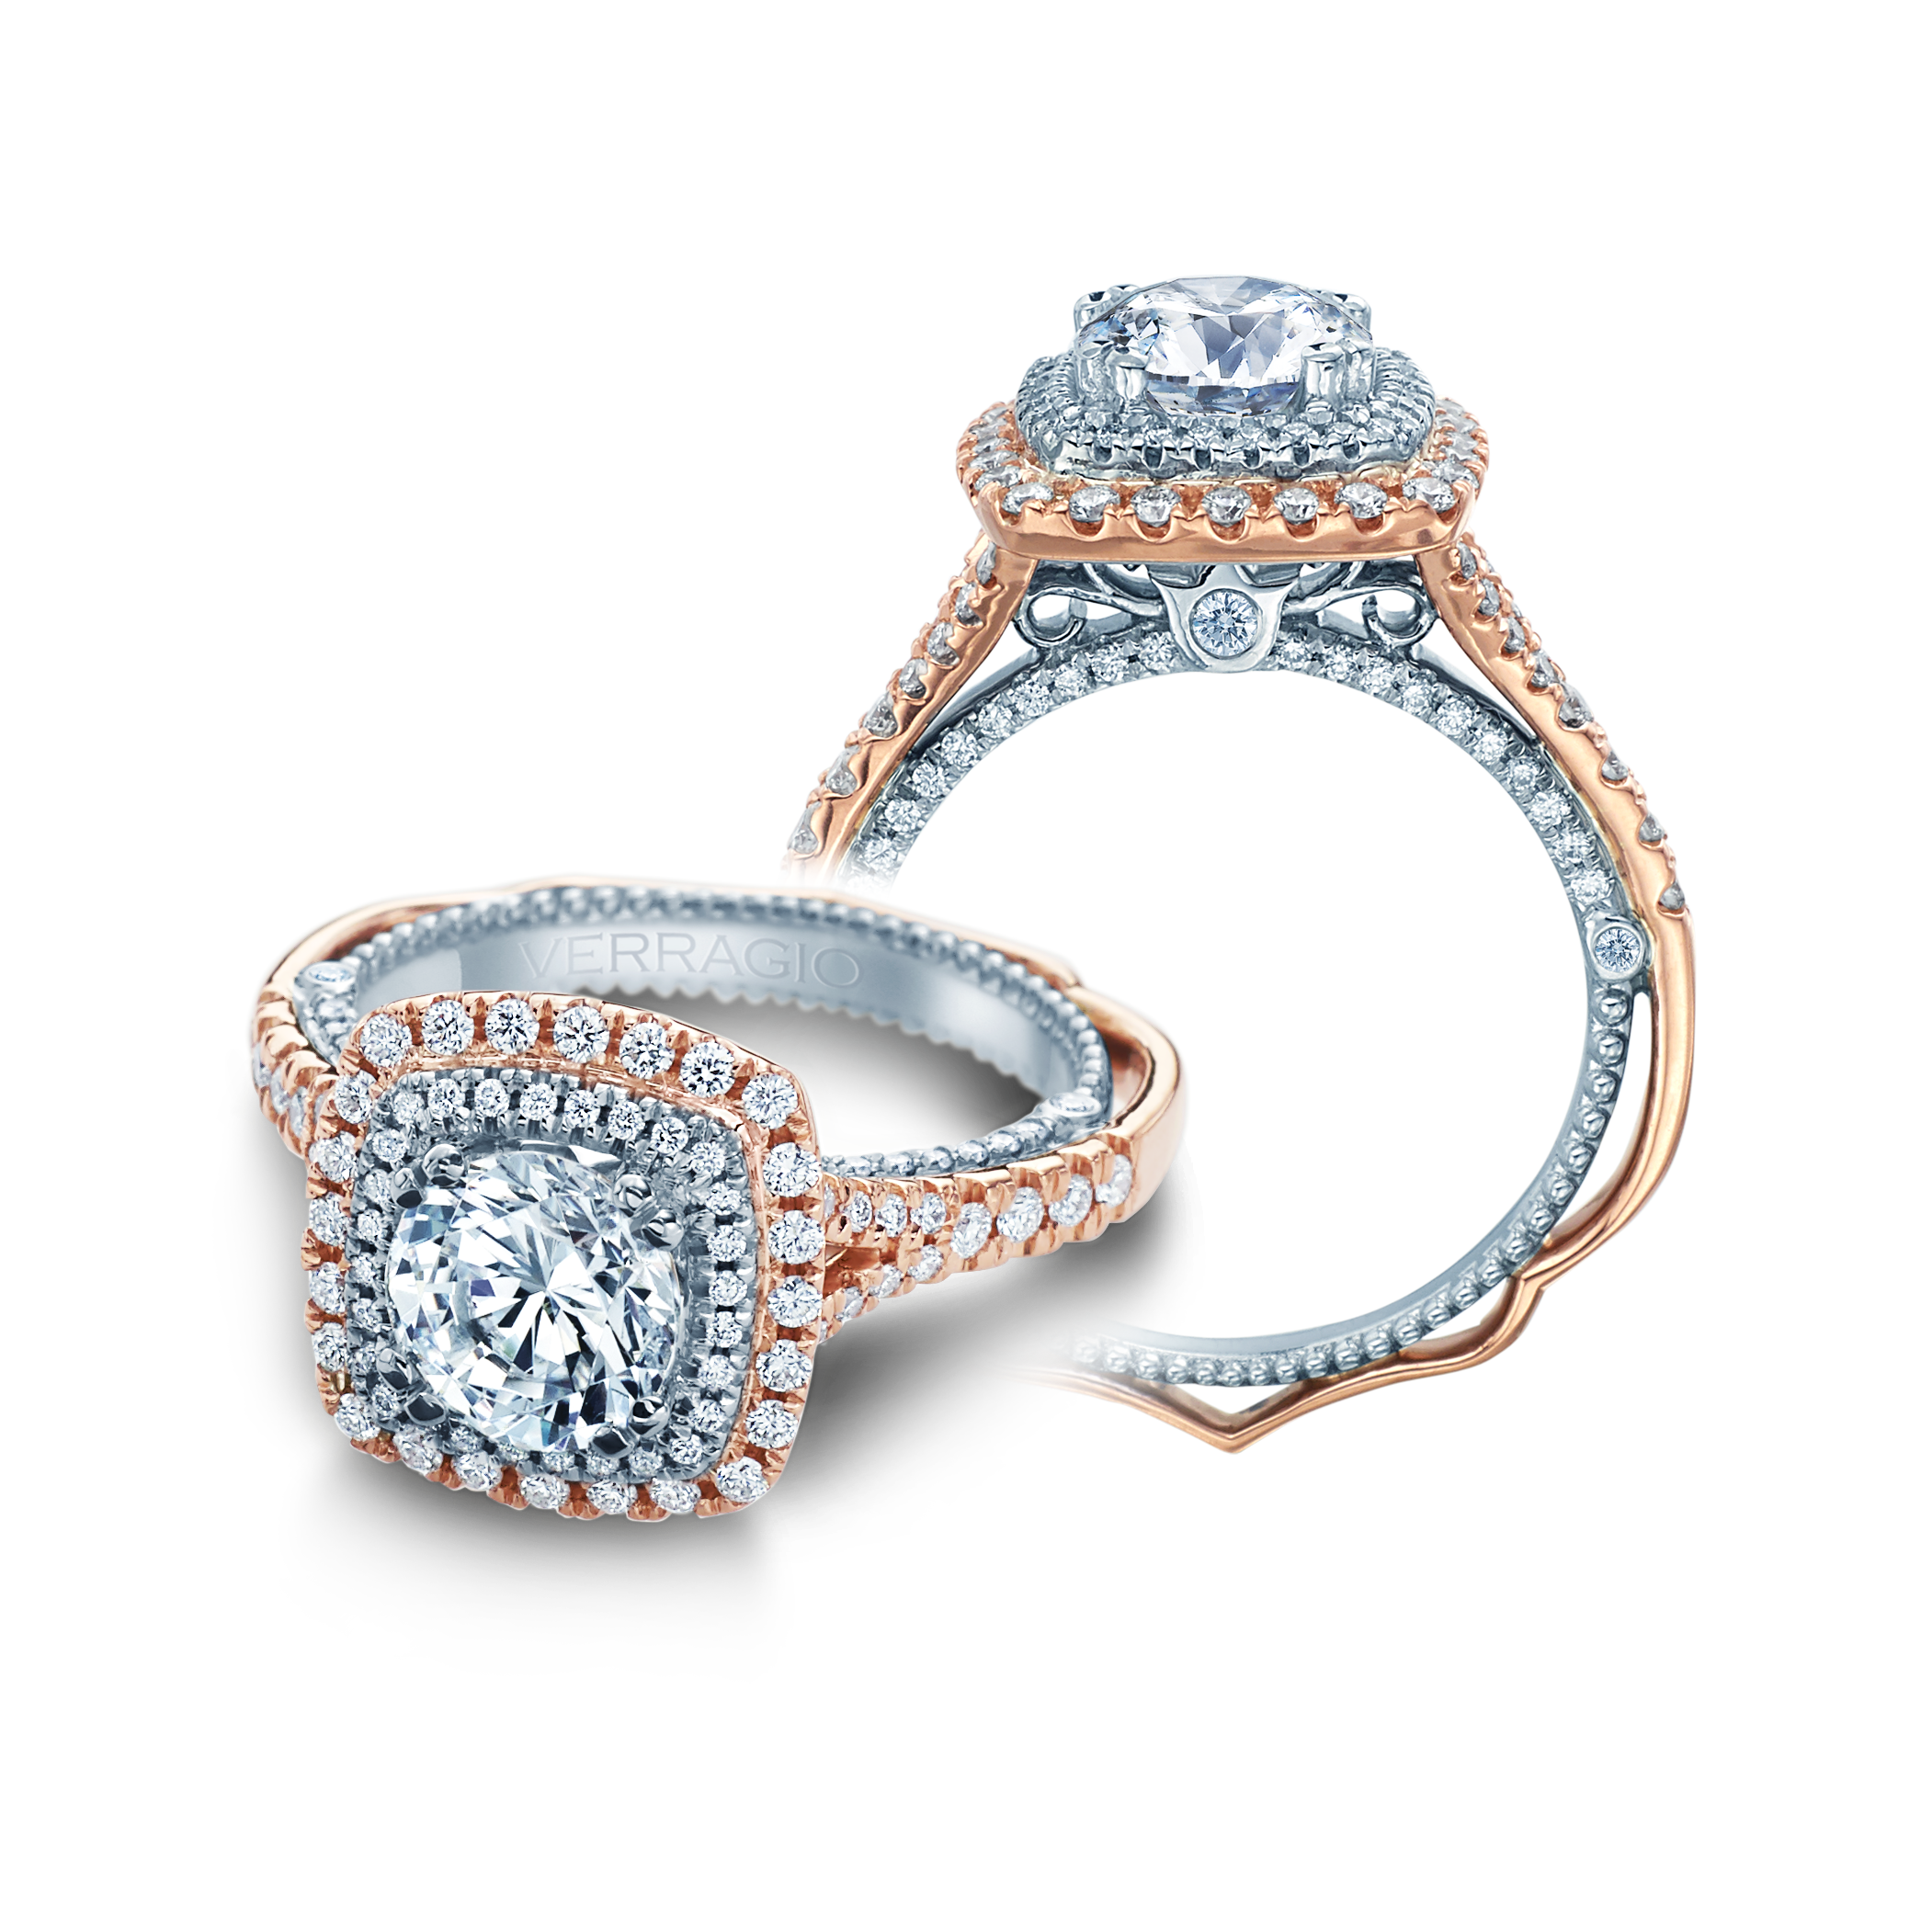 verragio designer of unique engagement rings files lawsuit